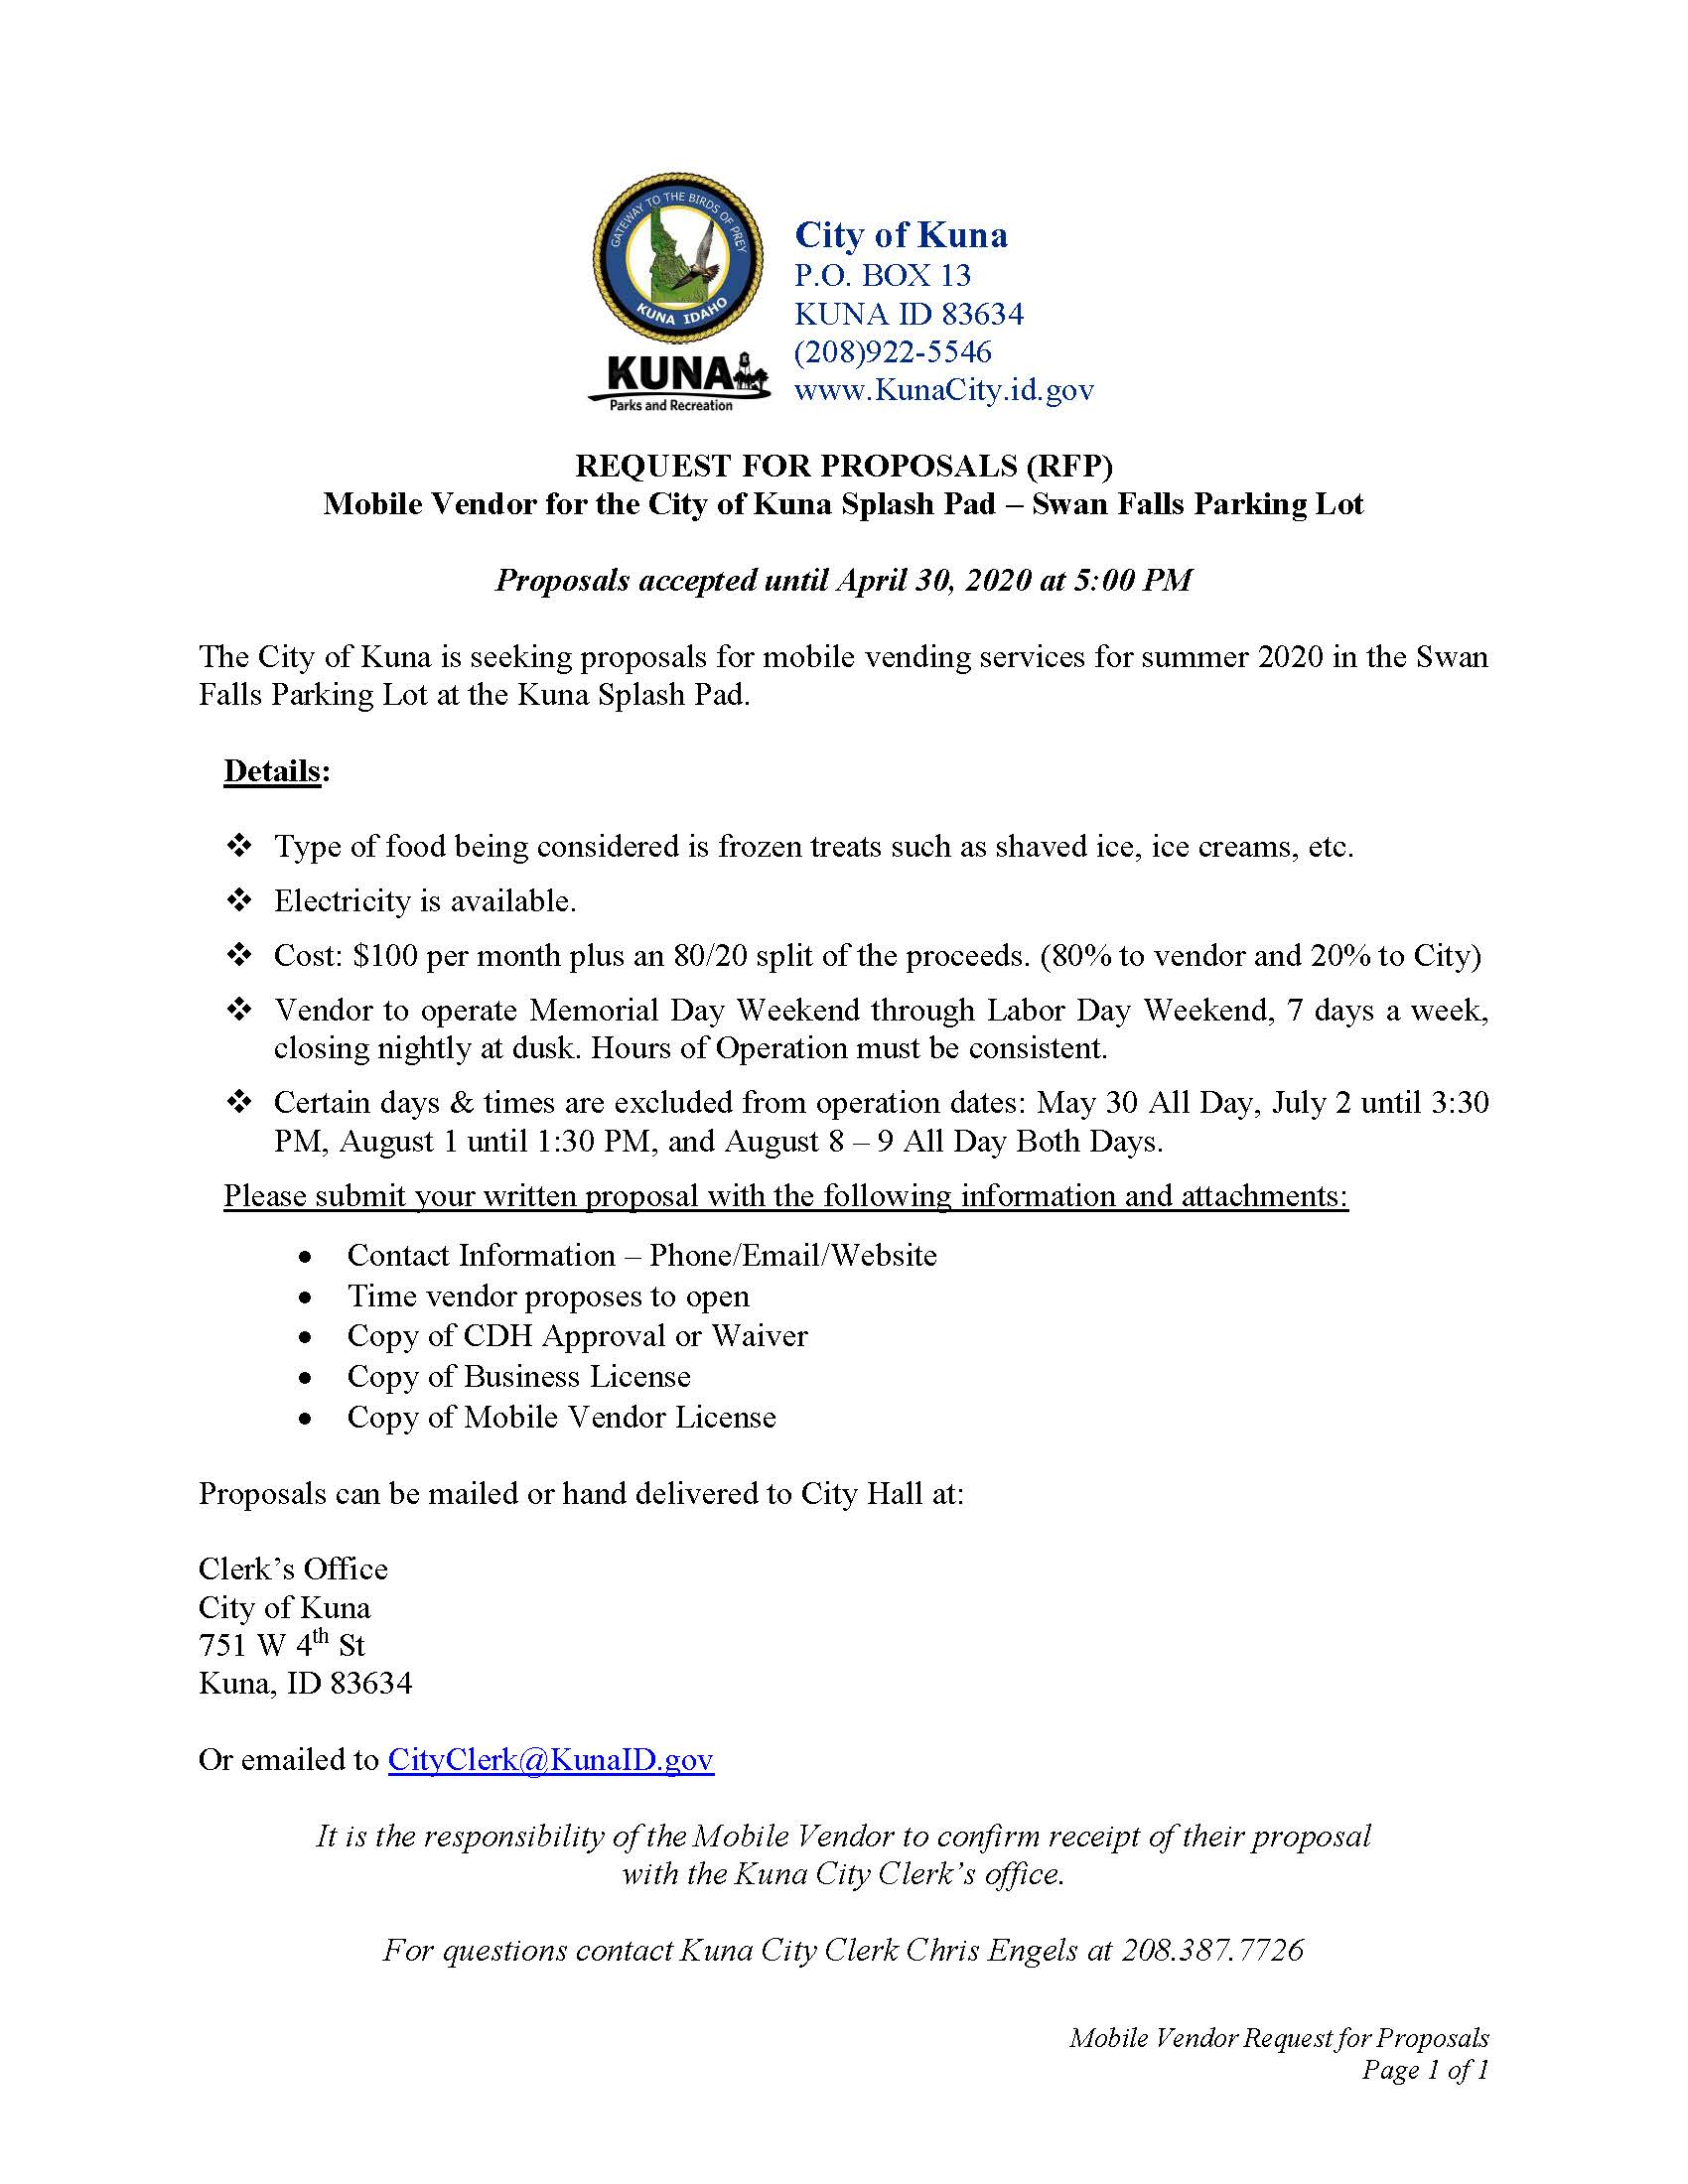 RFP for Splash Pad Mobile Vendor 01.15.2020 (JPEG)